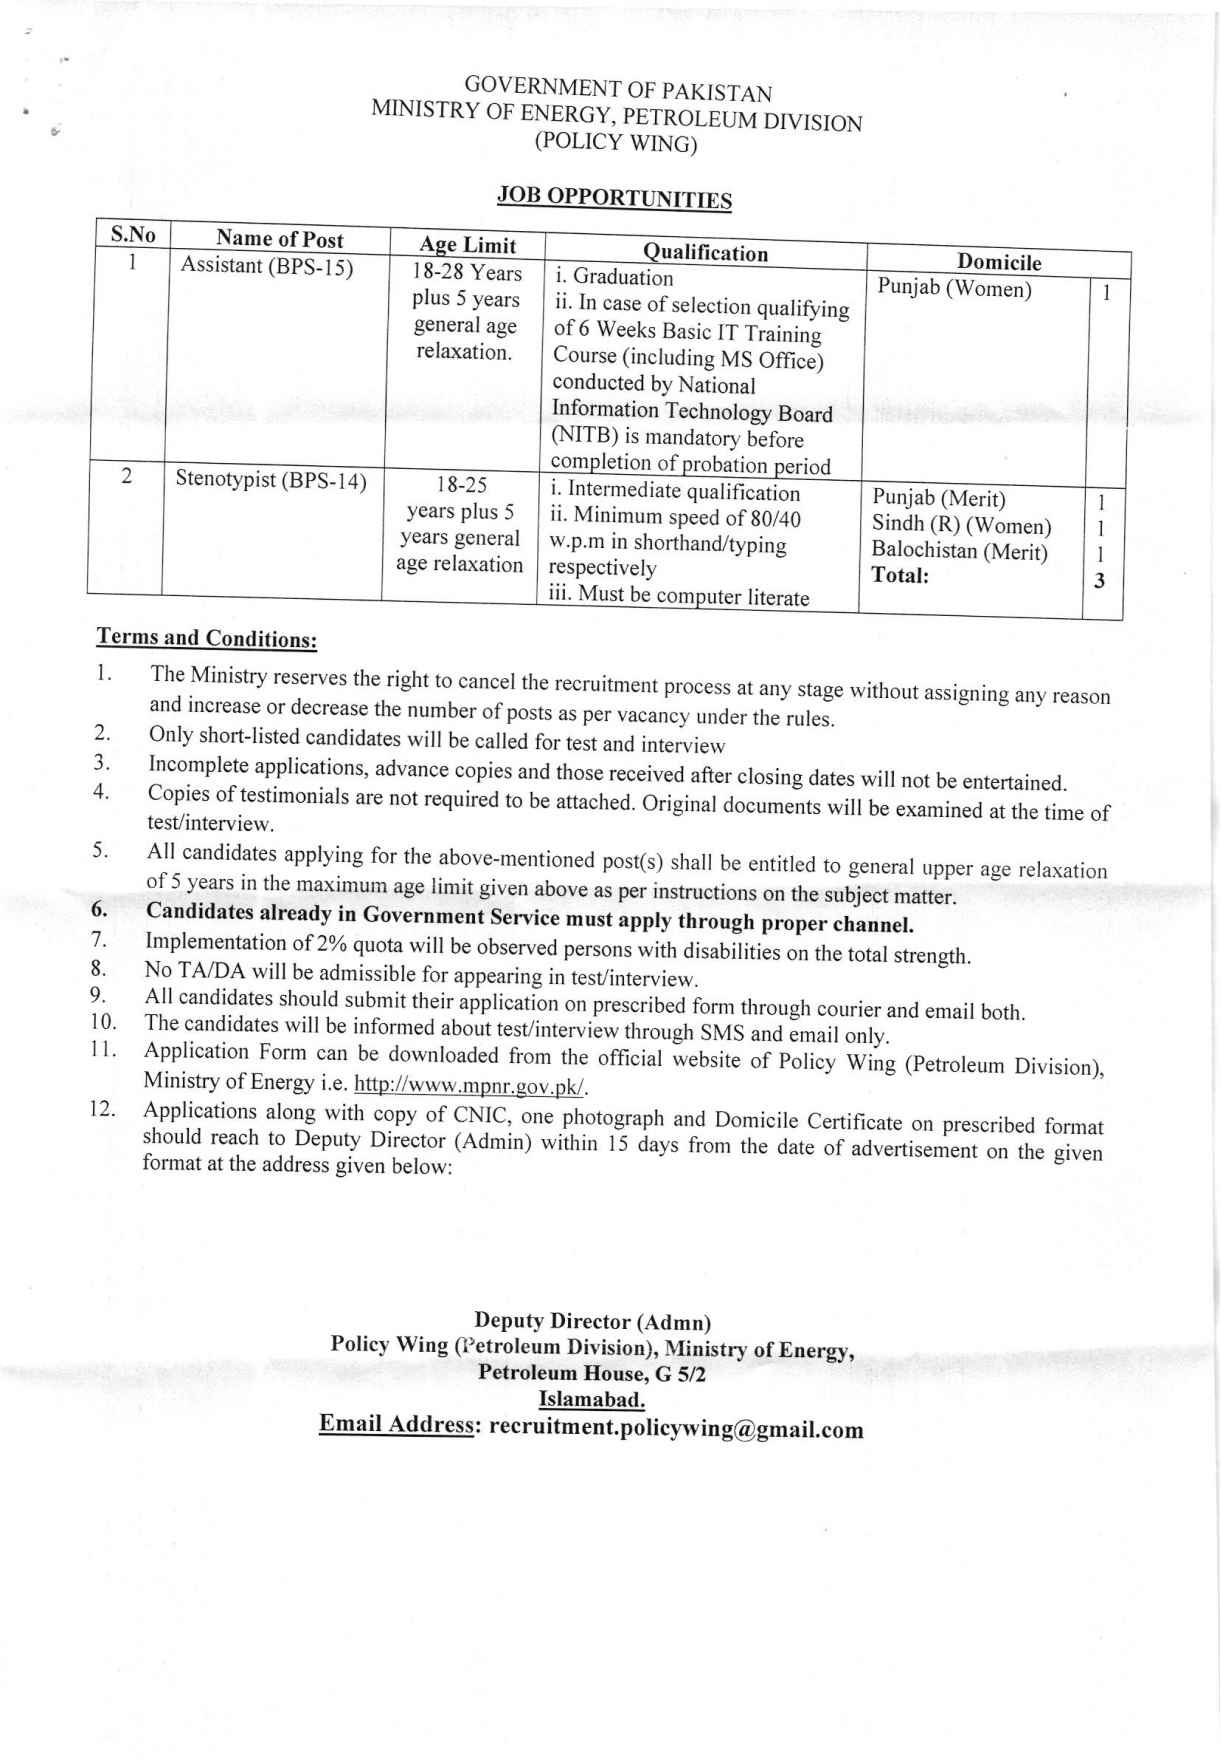 Ministry of Energy Management Posts 2020 For Assistant, Stenotypist allsindhjobz